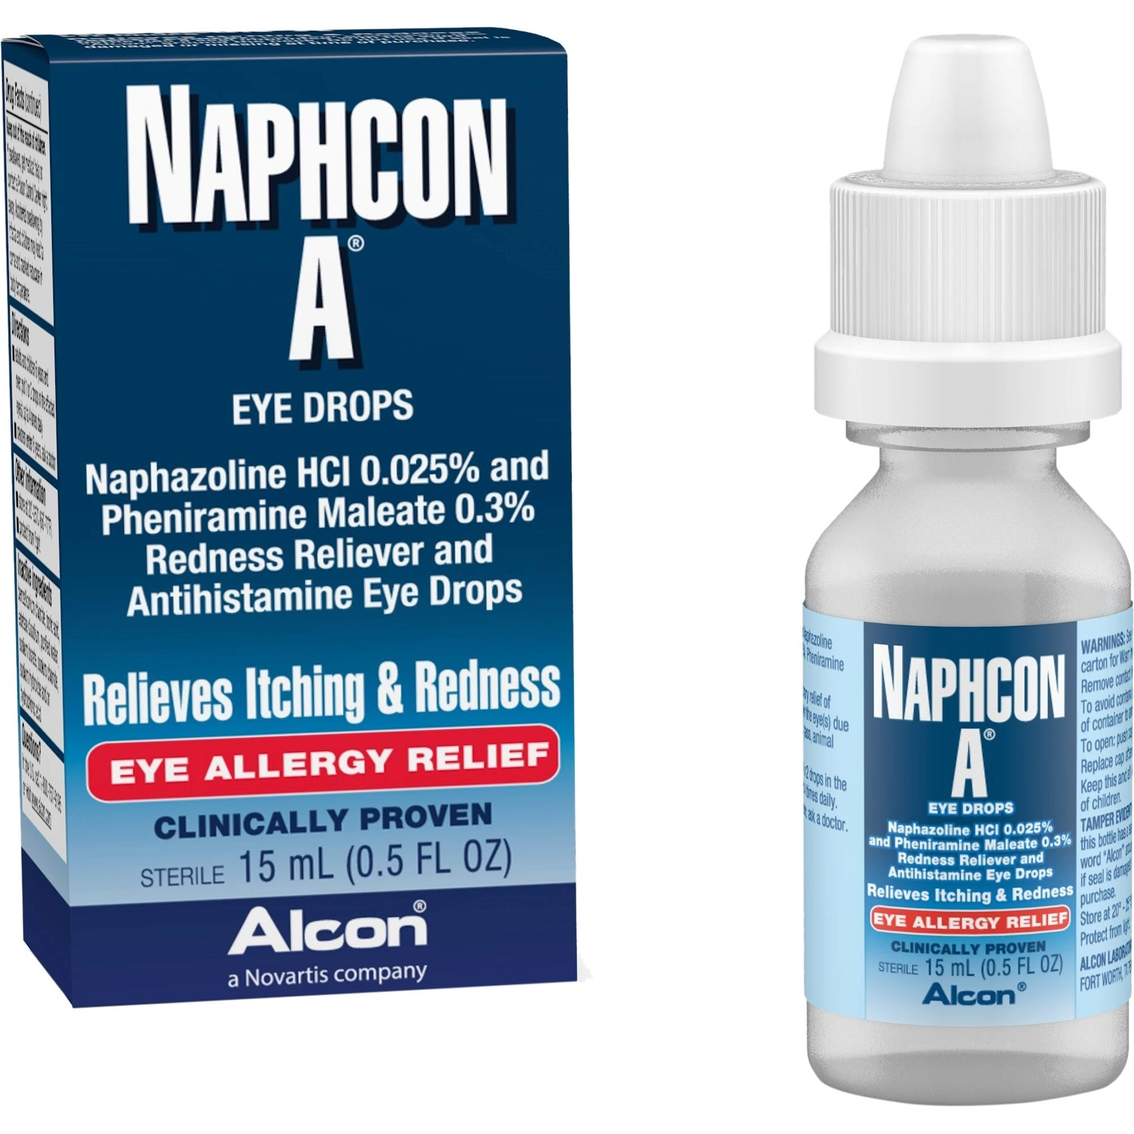 Naphcon A Allergy Relief Eye Drops | Accessories & Contact Solutions ...